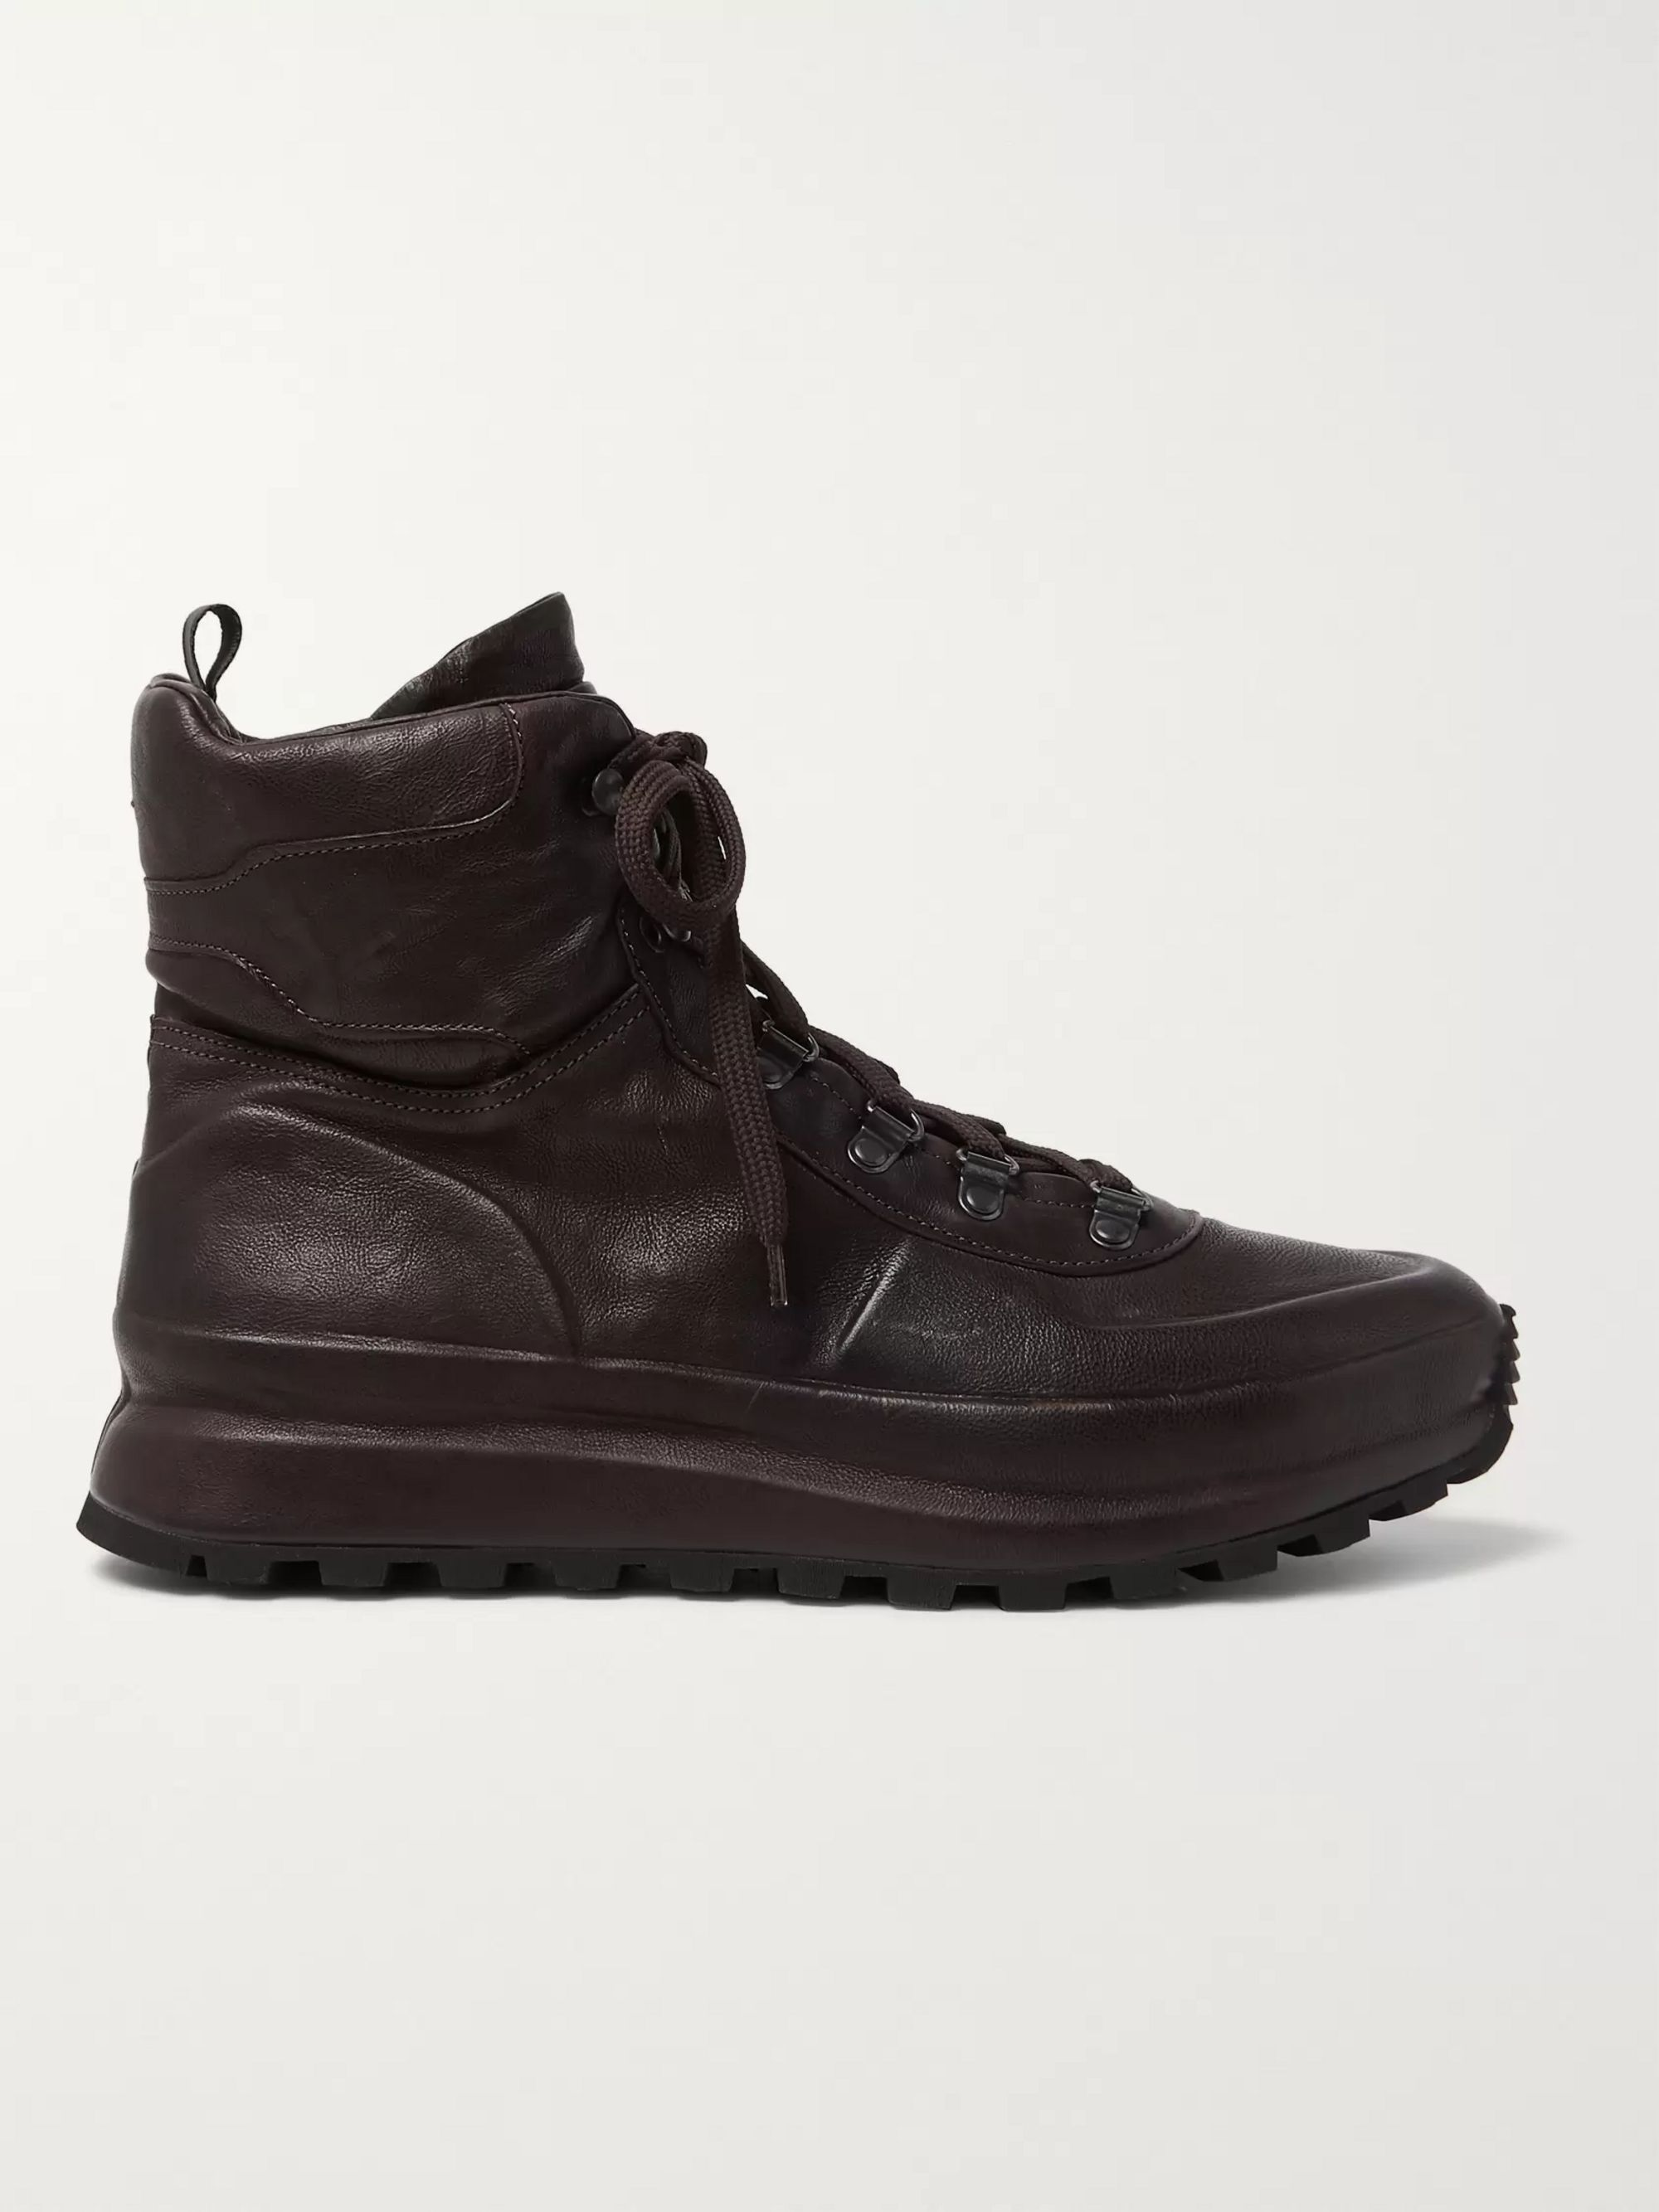 Officine Creative Frontier Shearling-Lined Leather High-Top Sneakers